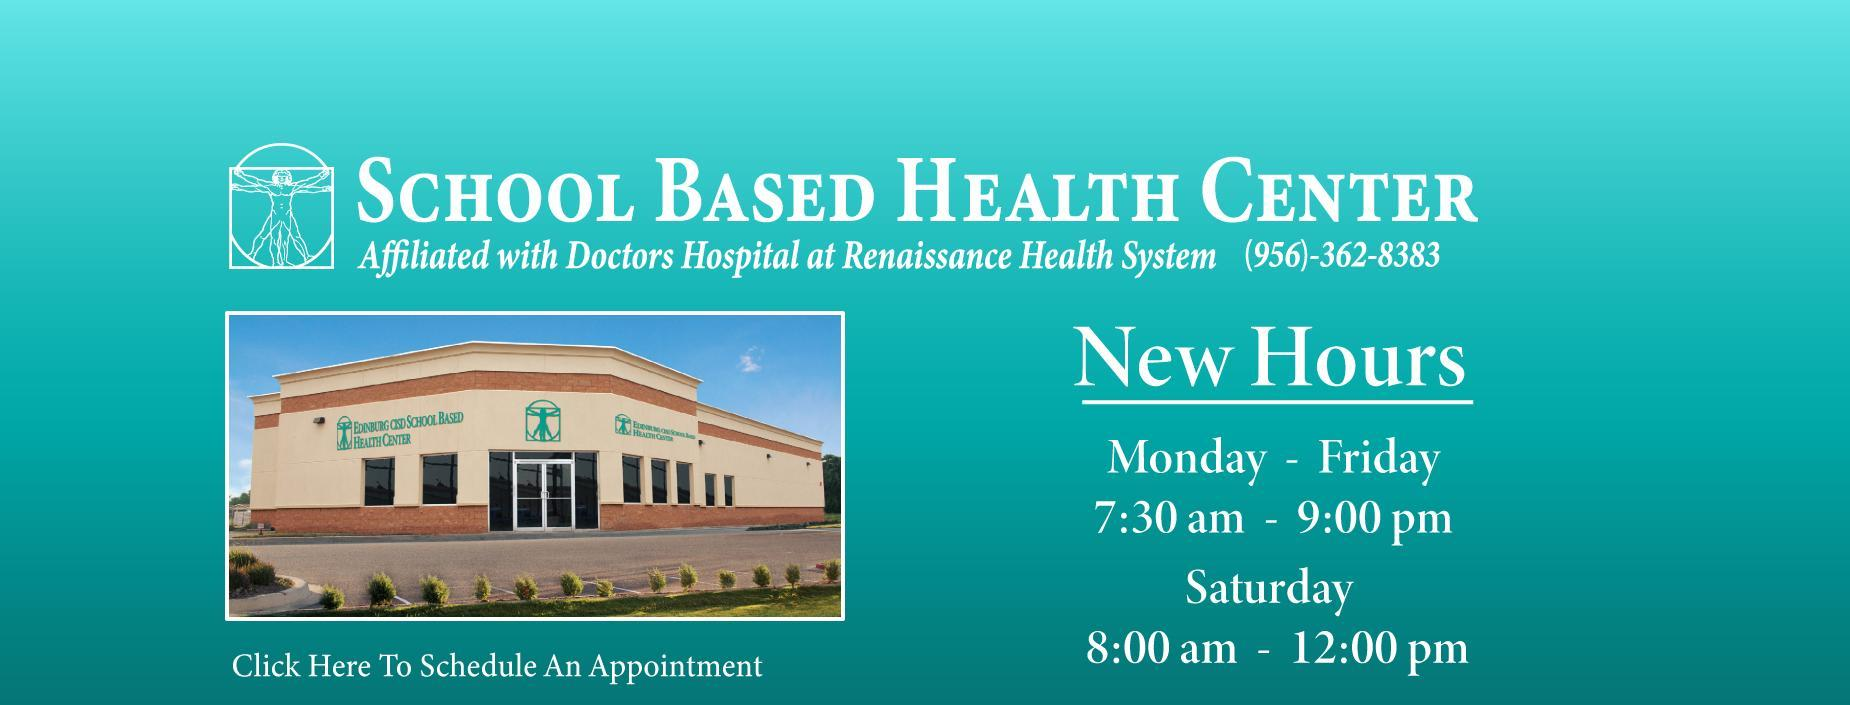 DHR School Based Health Center